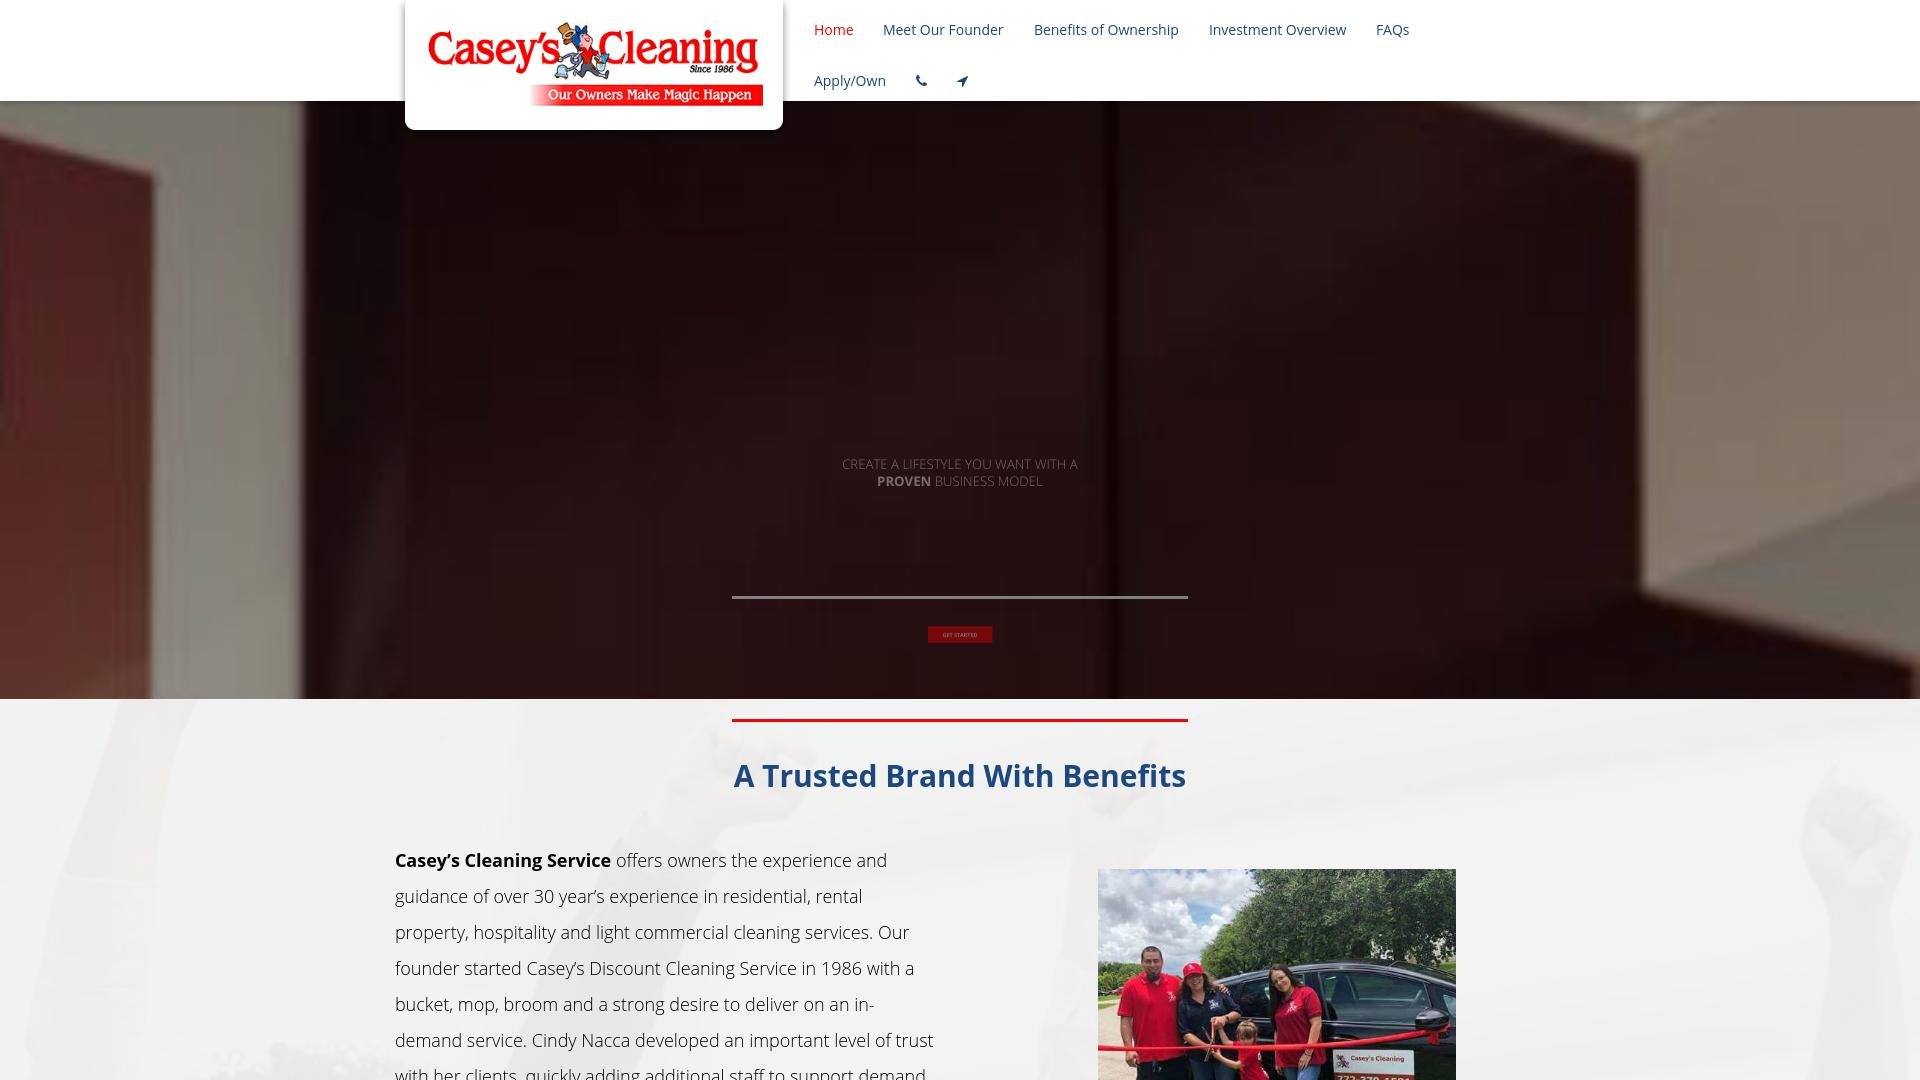 Casey's Cleaning Franchise